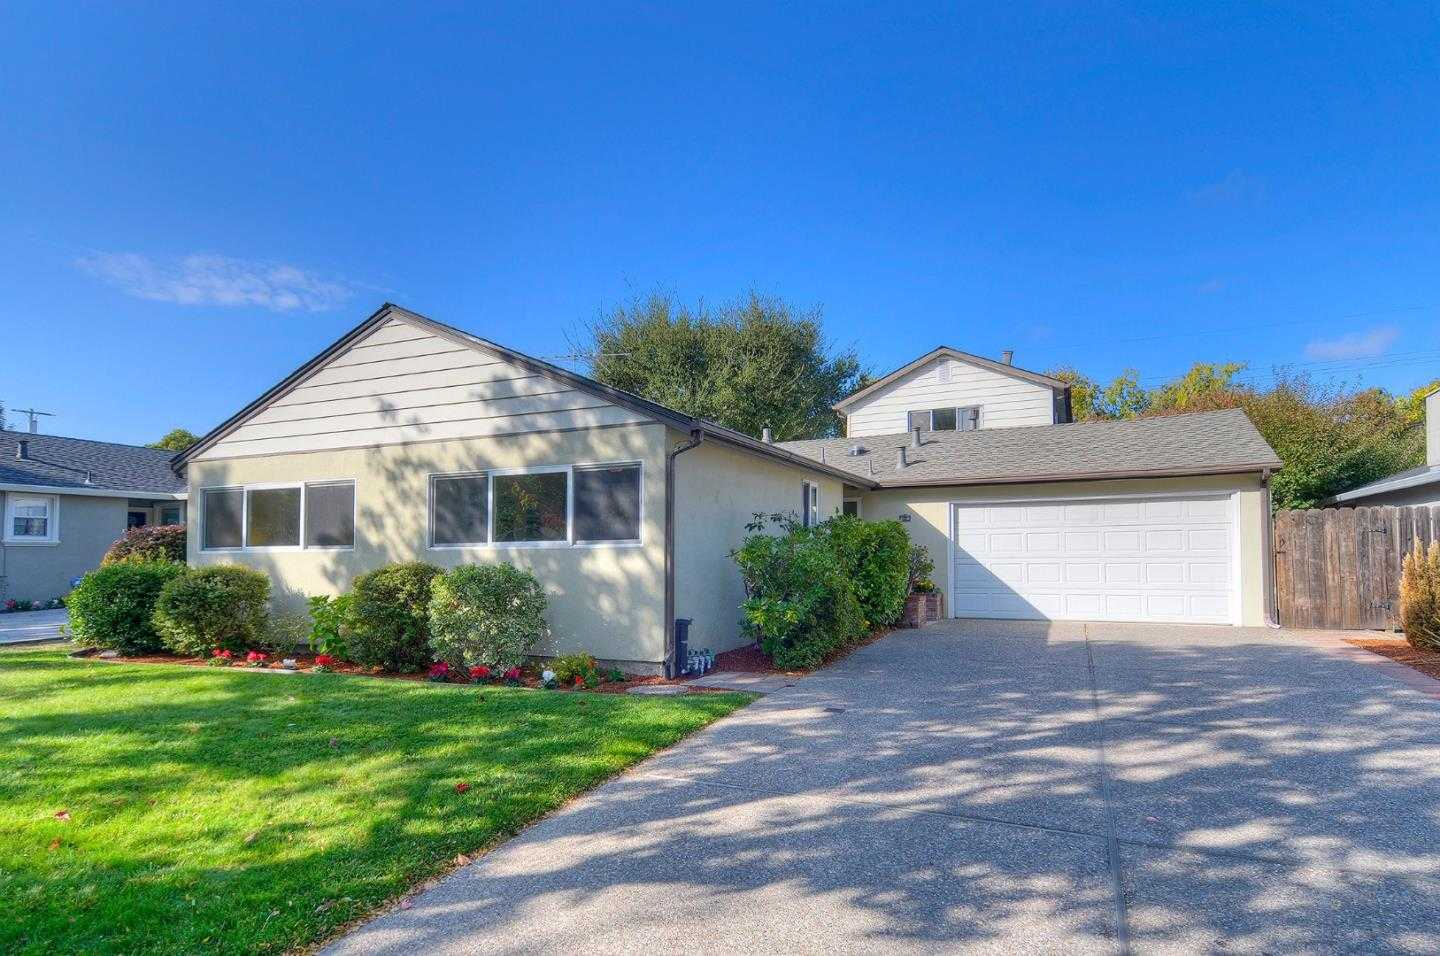 $1,549,000 - 4Br/2Ba -  for Sale in Redwood City